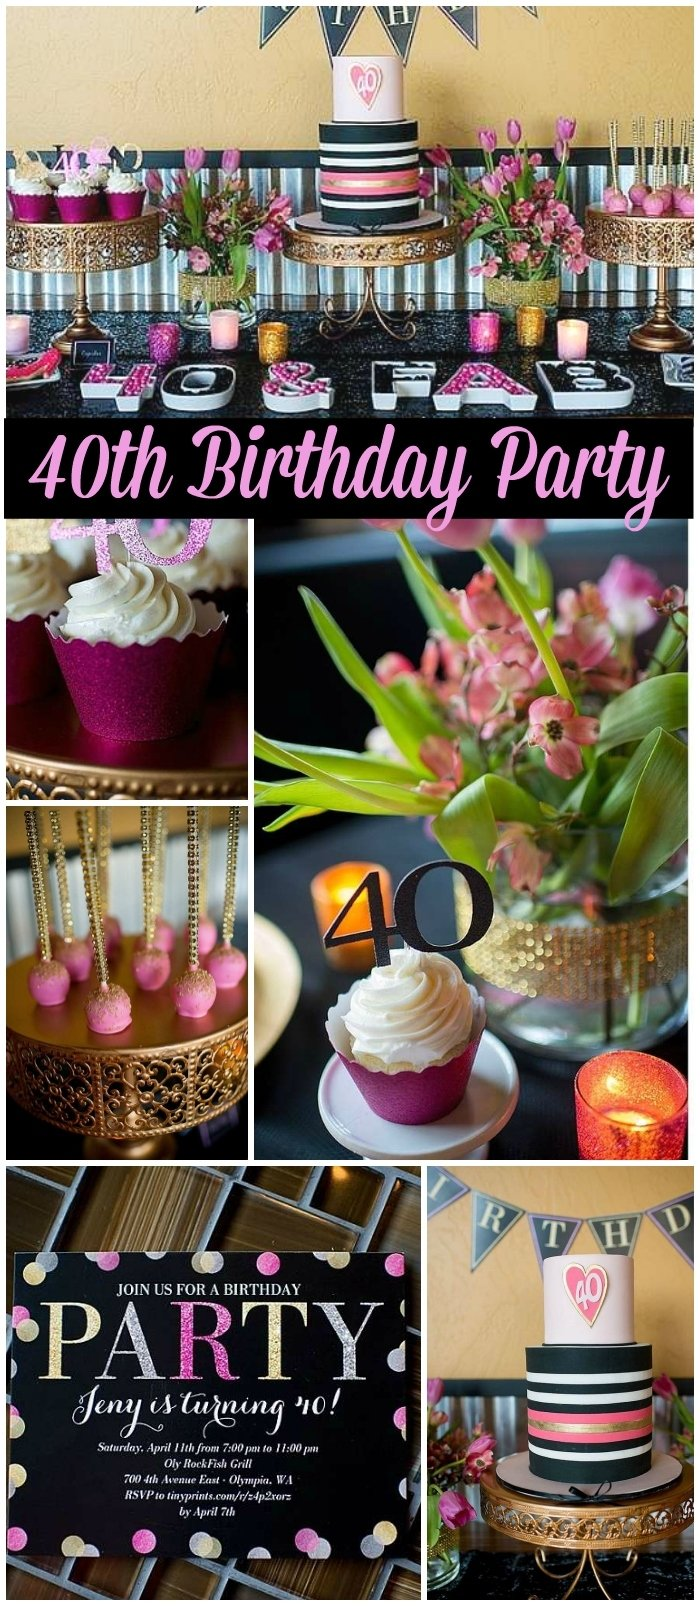 10 Most Popular Birthday Ideas For Wife Turning 40 40th birthday birthday a glamourous 40th birthday party 40th 2020